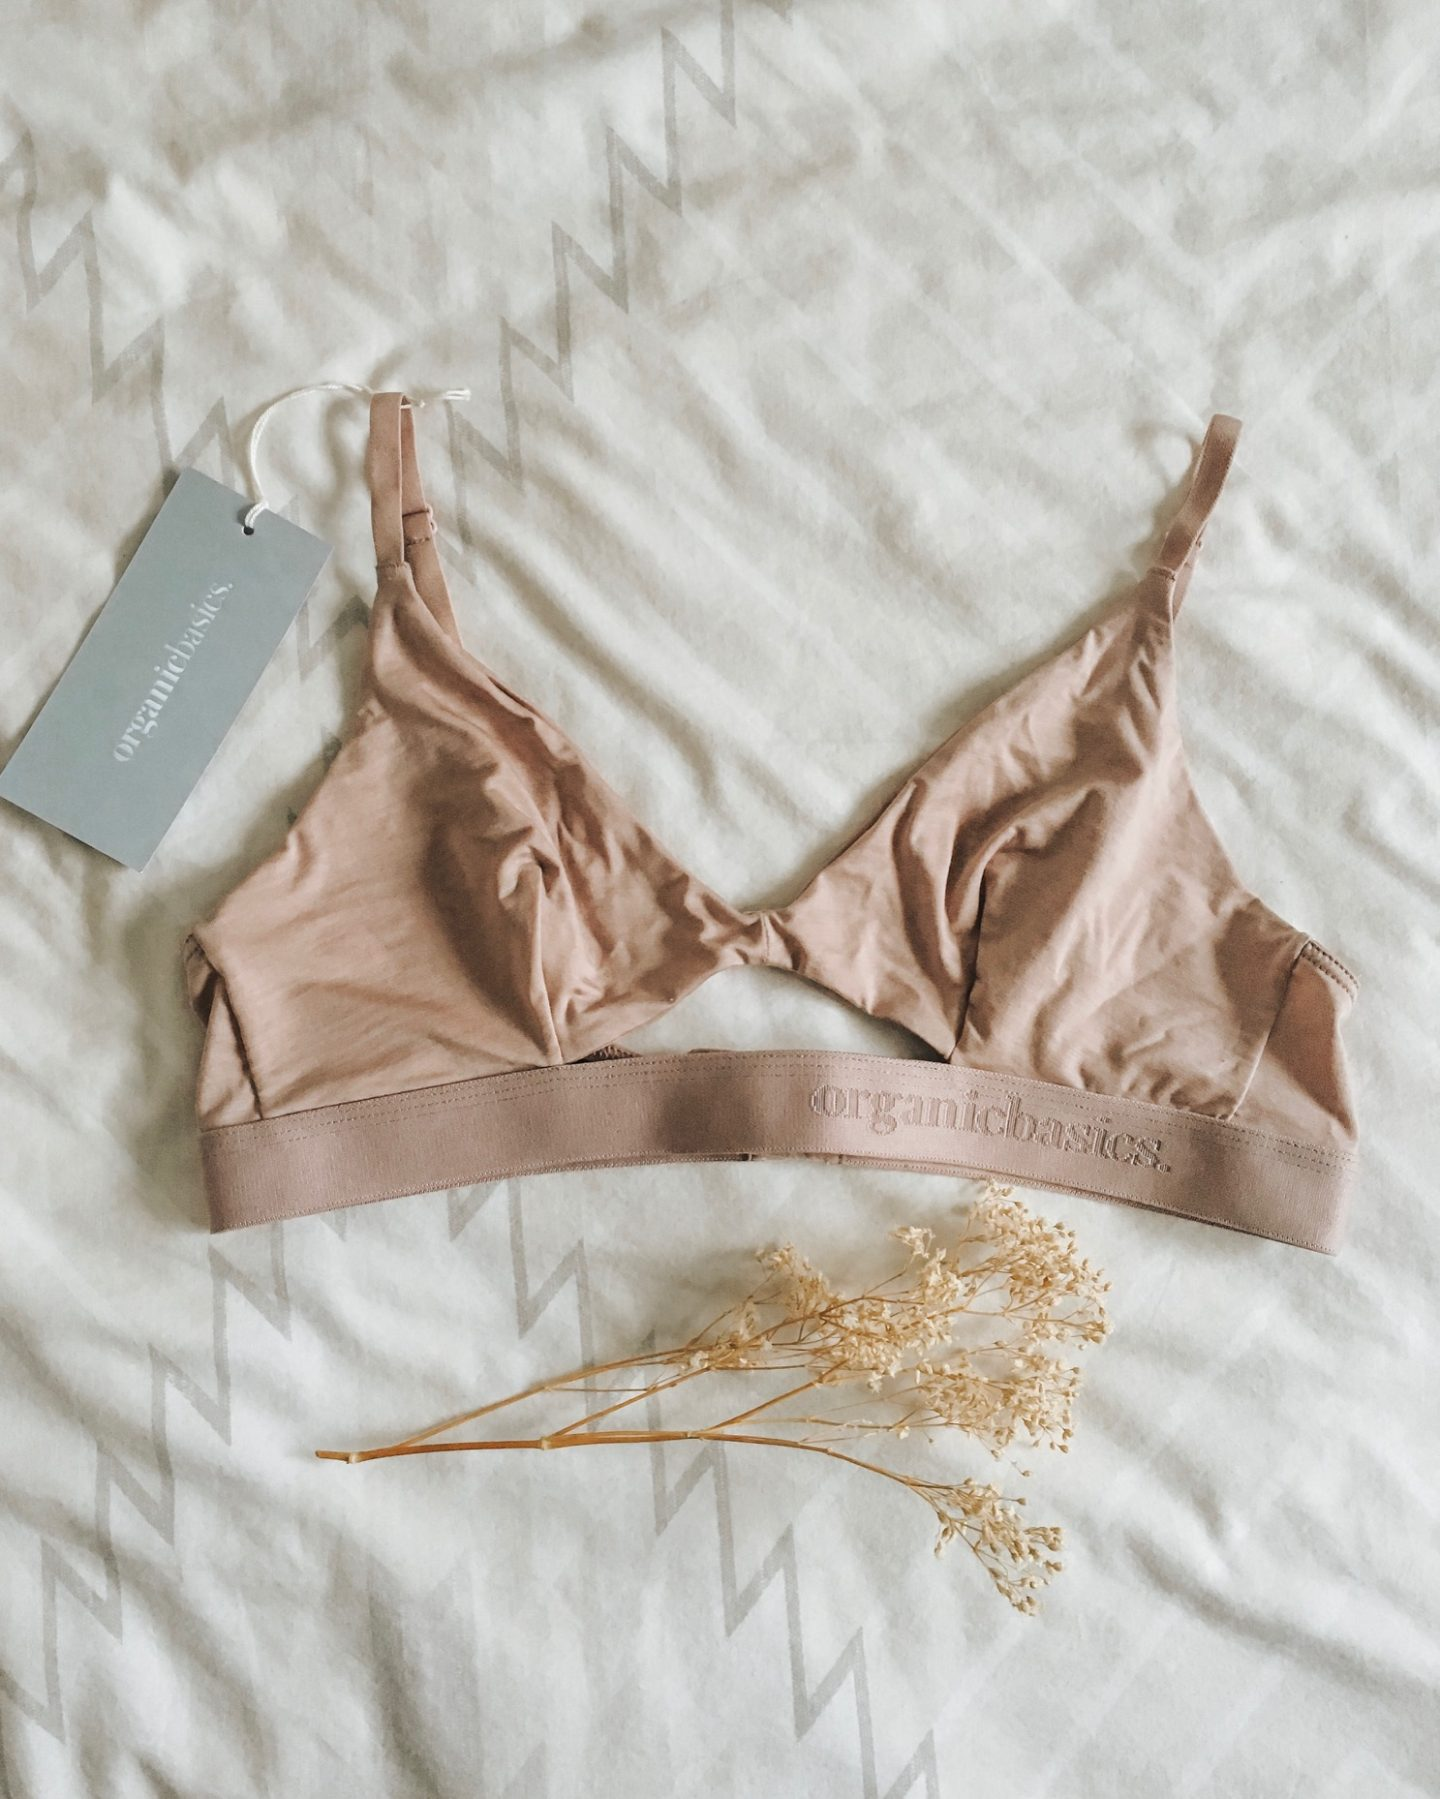 ethical underwear brands